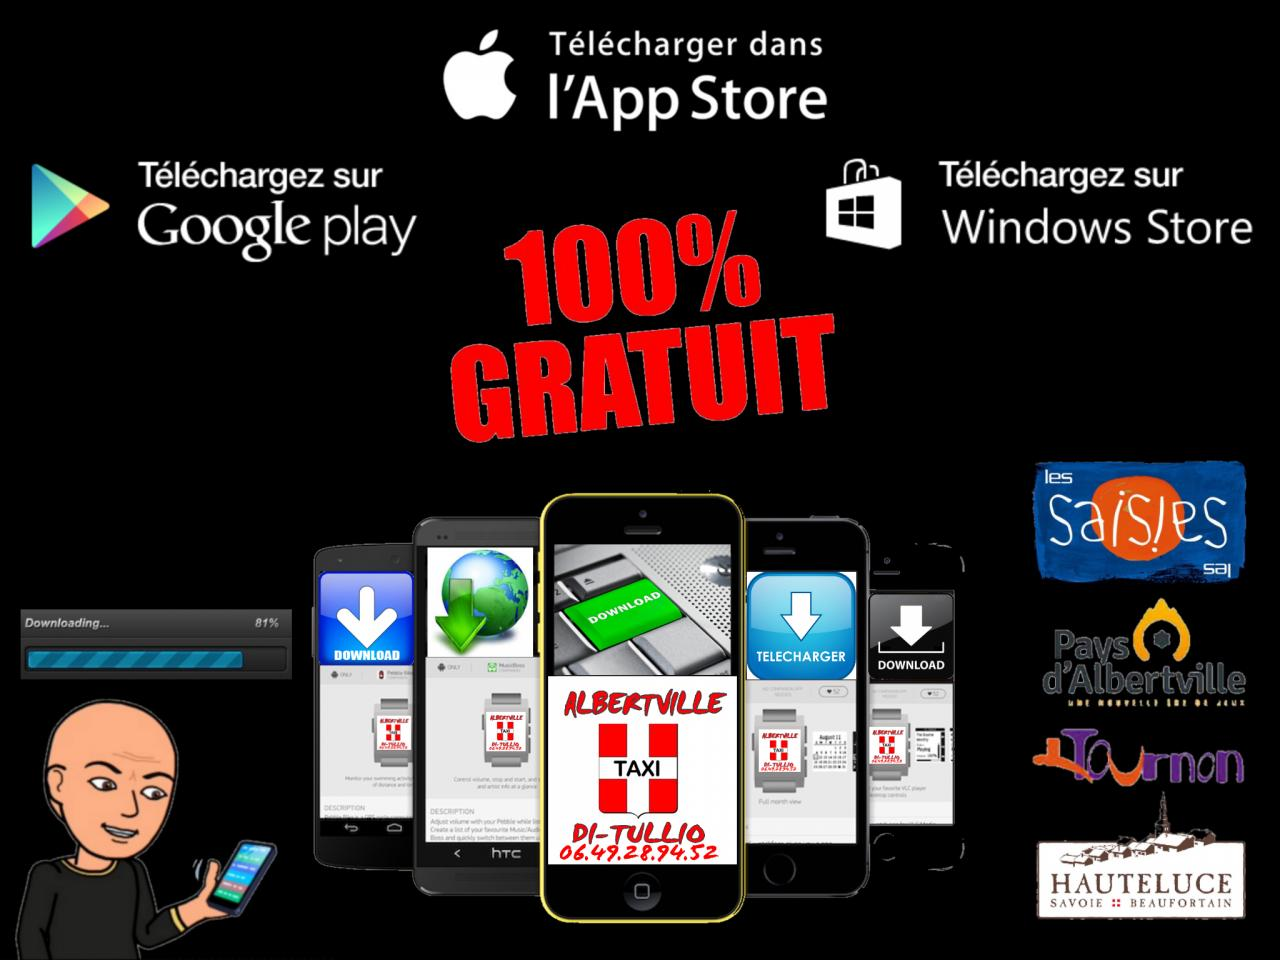 Taxi Di Tullio Apple Store, Google Play, Windows Phone.